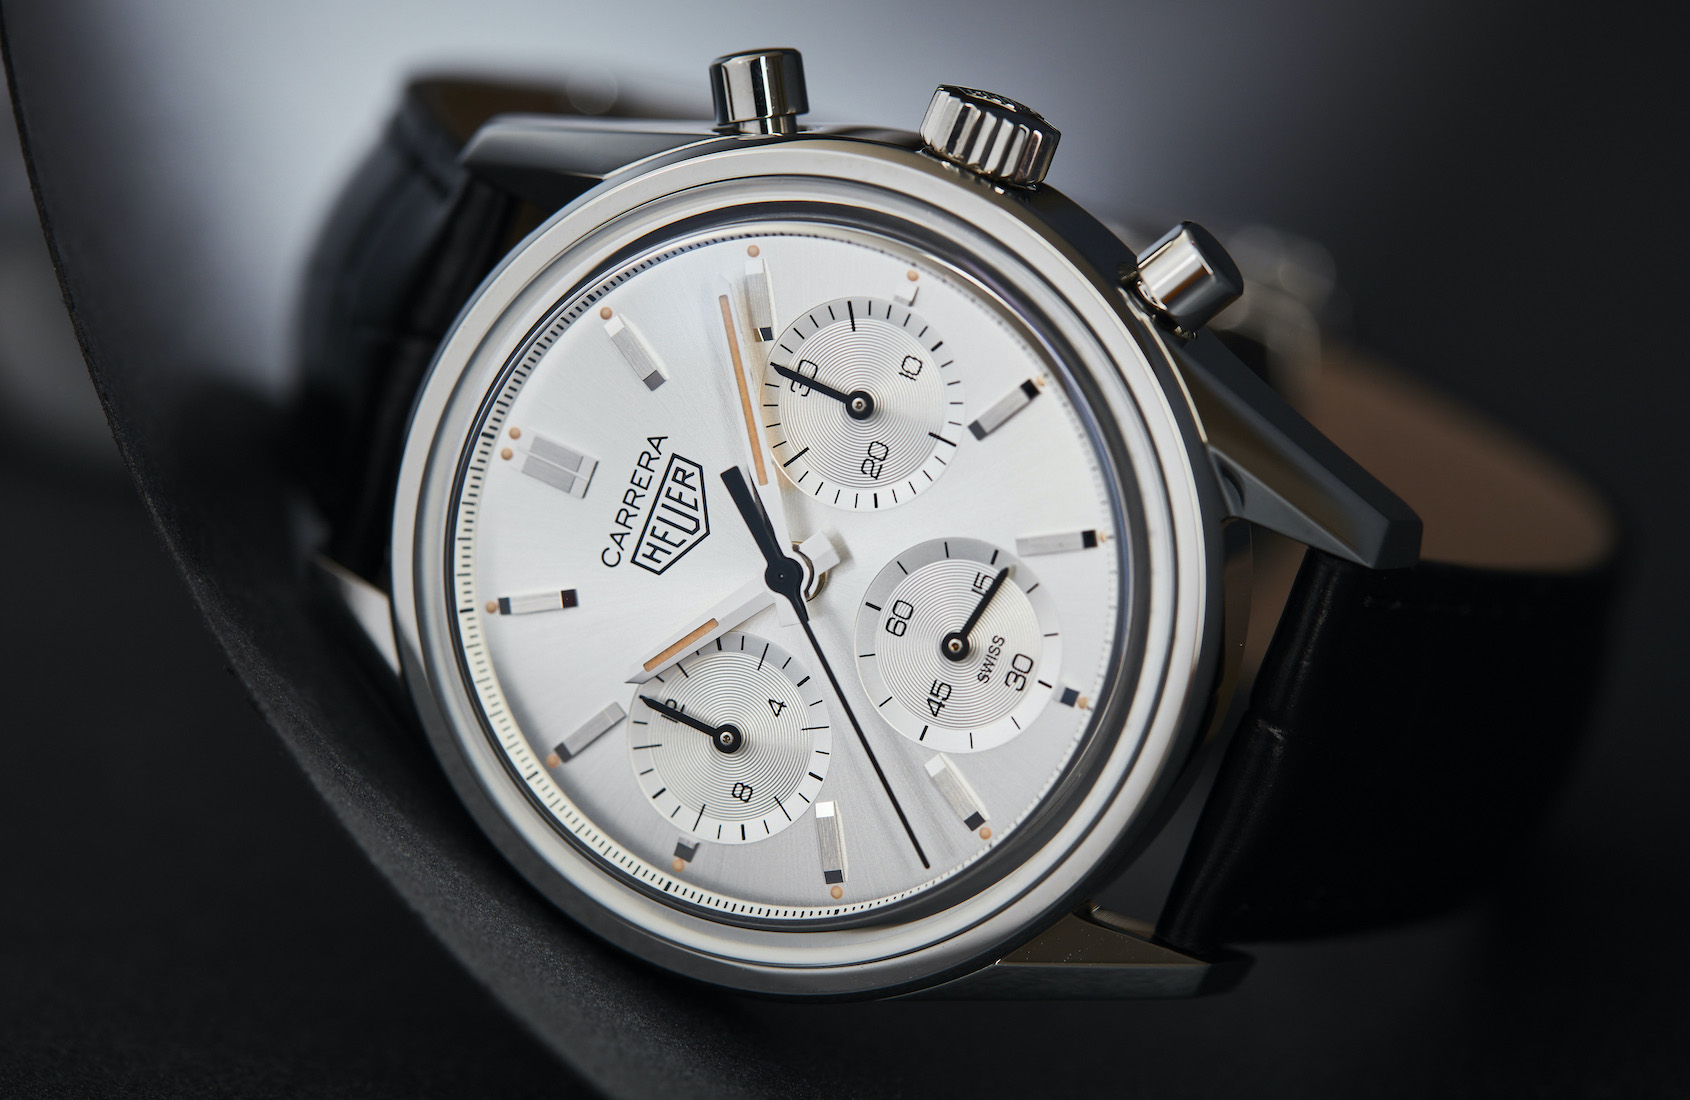 11 of the best chronographs of 2020 under $10,000 Aussie dollars (and wayyyy under $10,000USD)